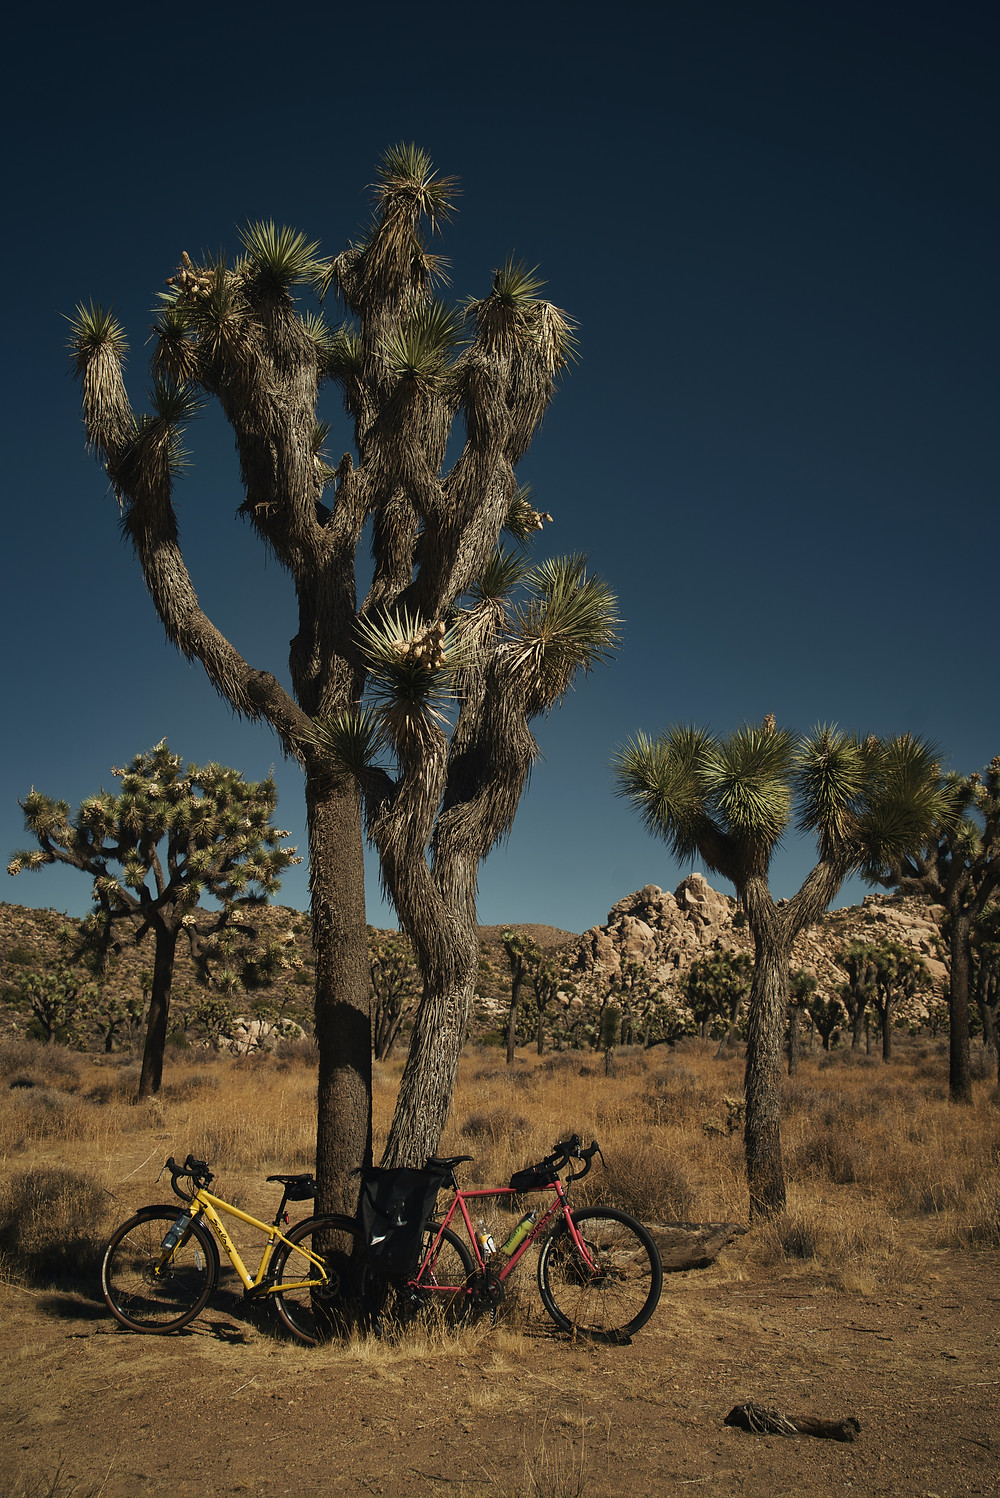 A joshua tree in the desert with bikes at its foot